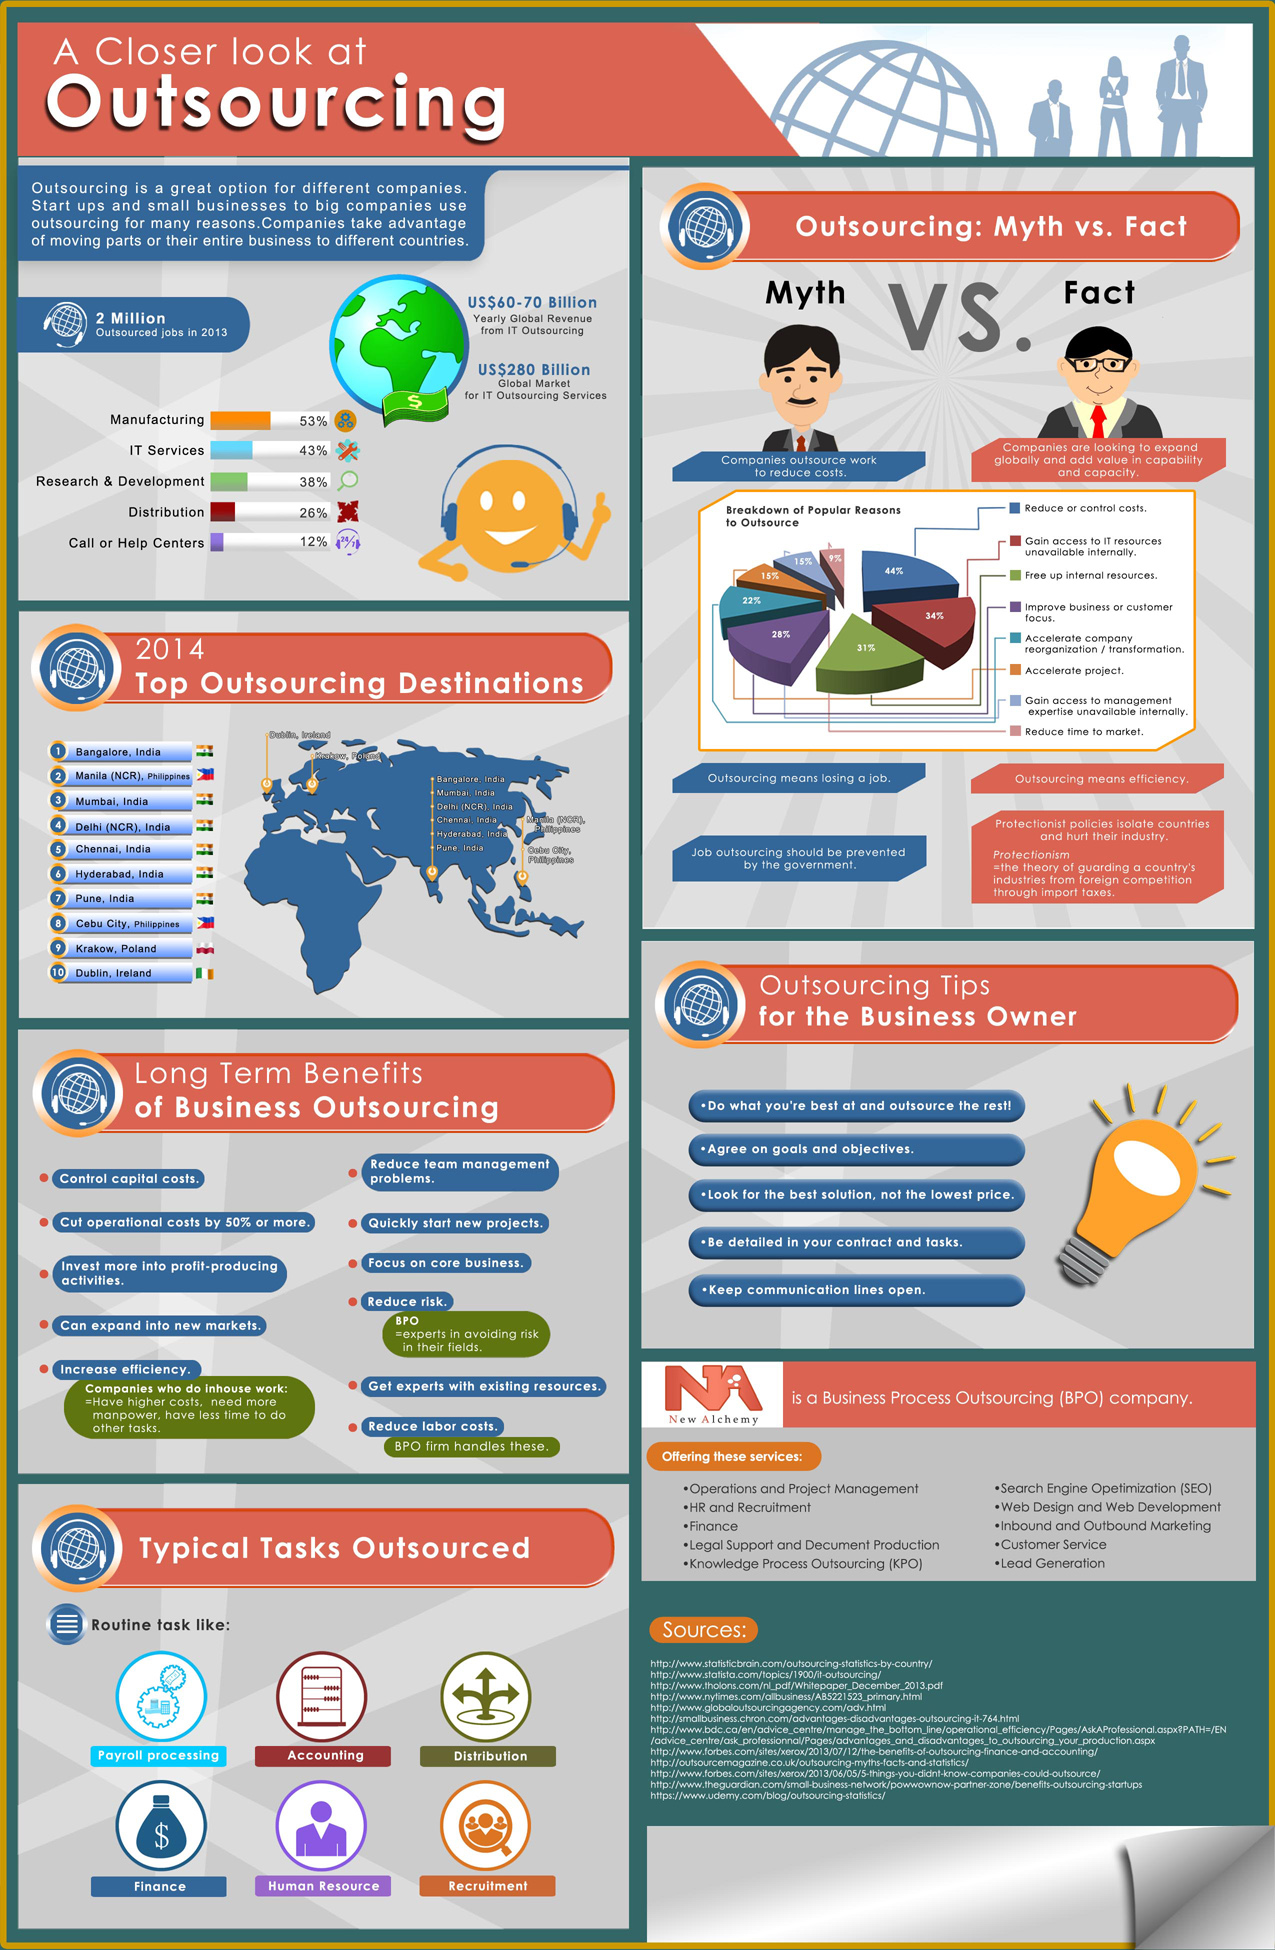 outsourcing infographic.jpg